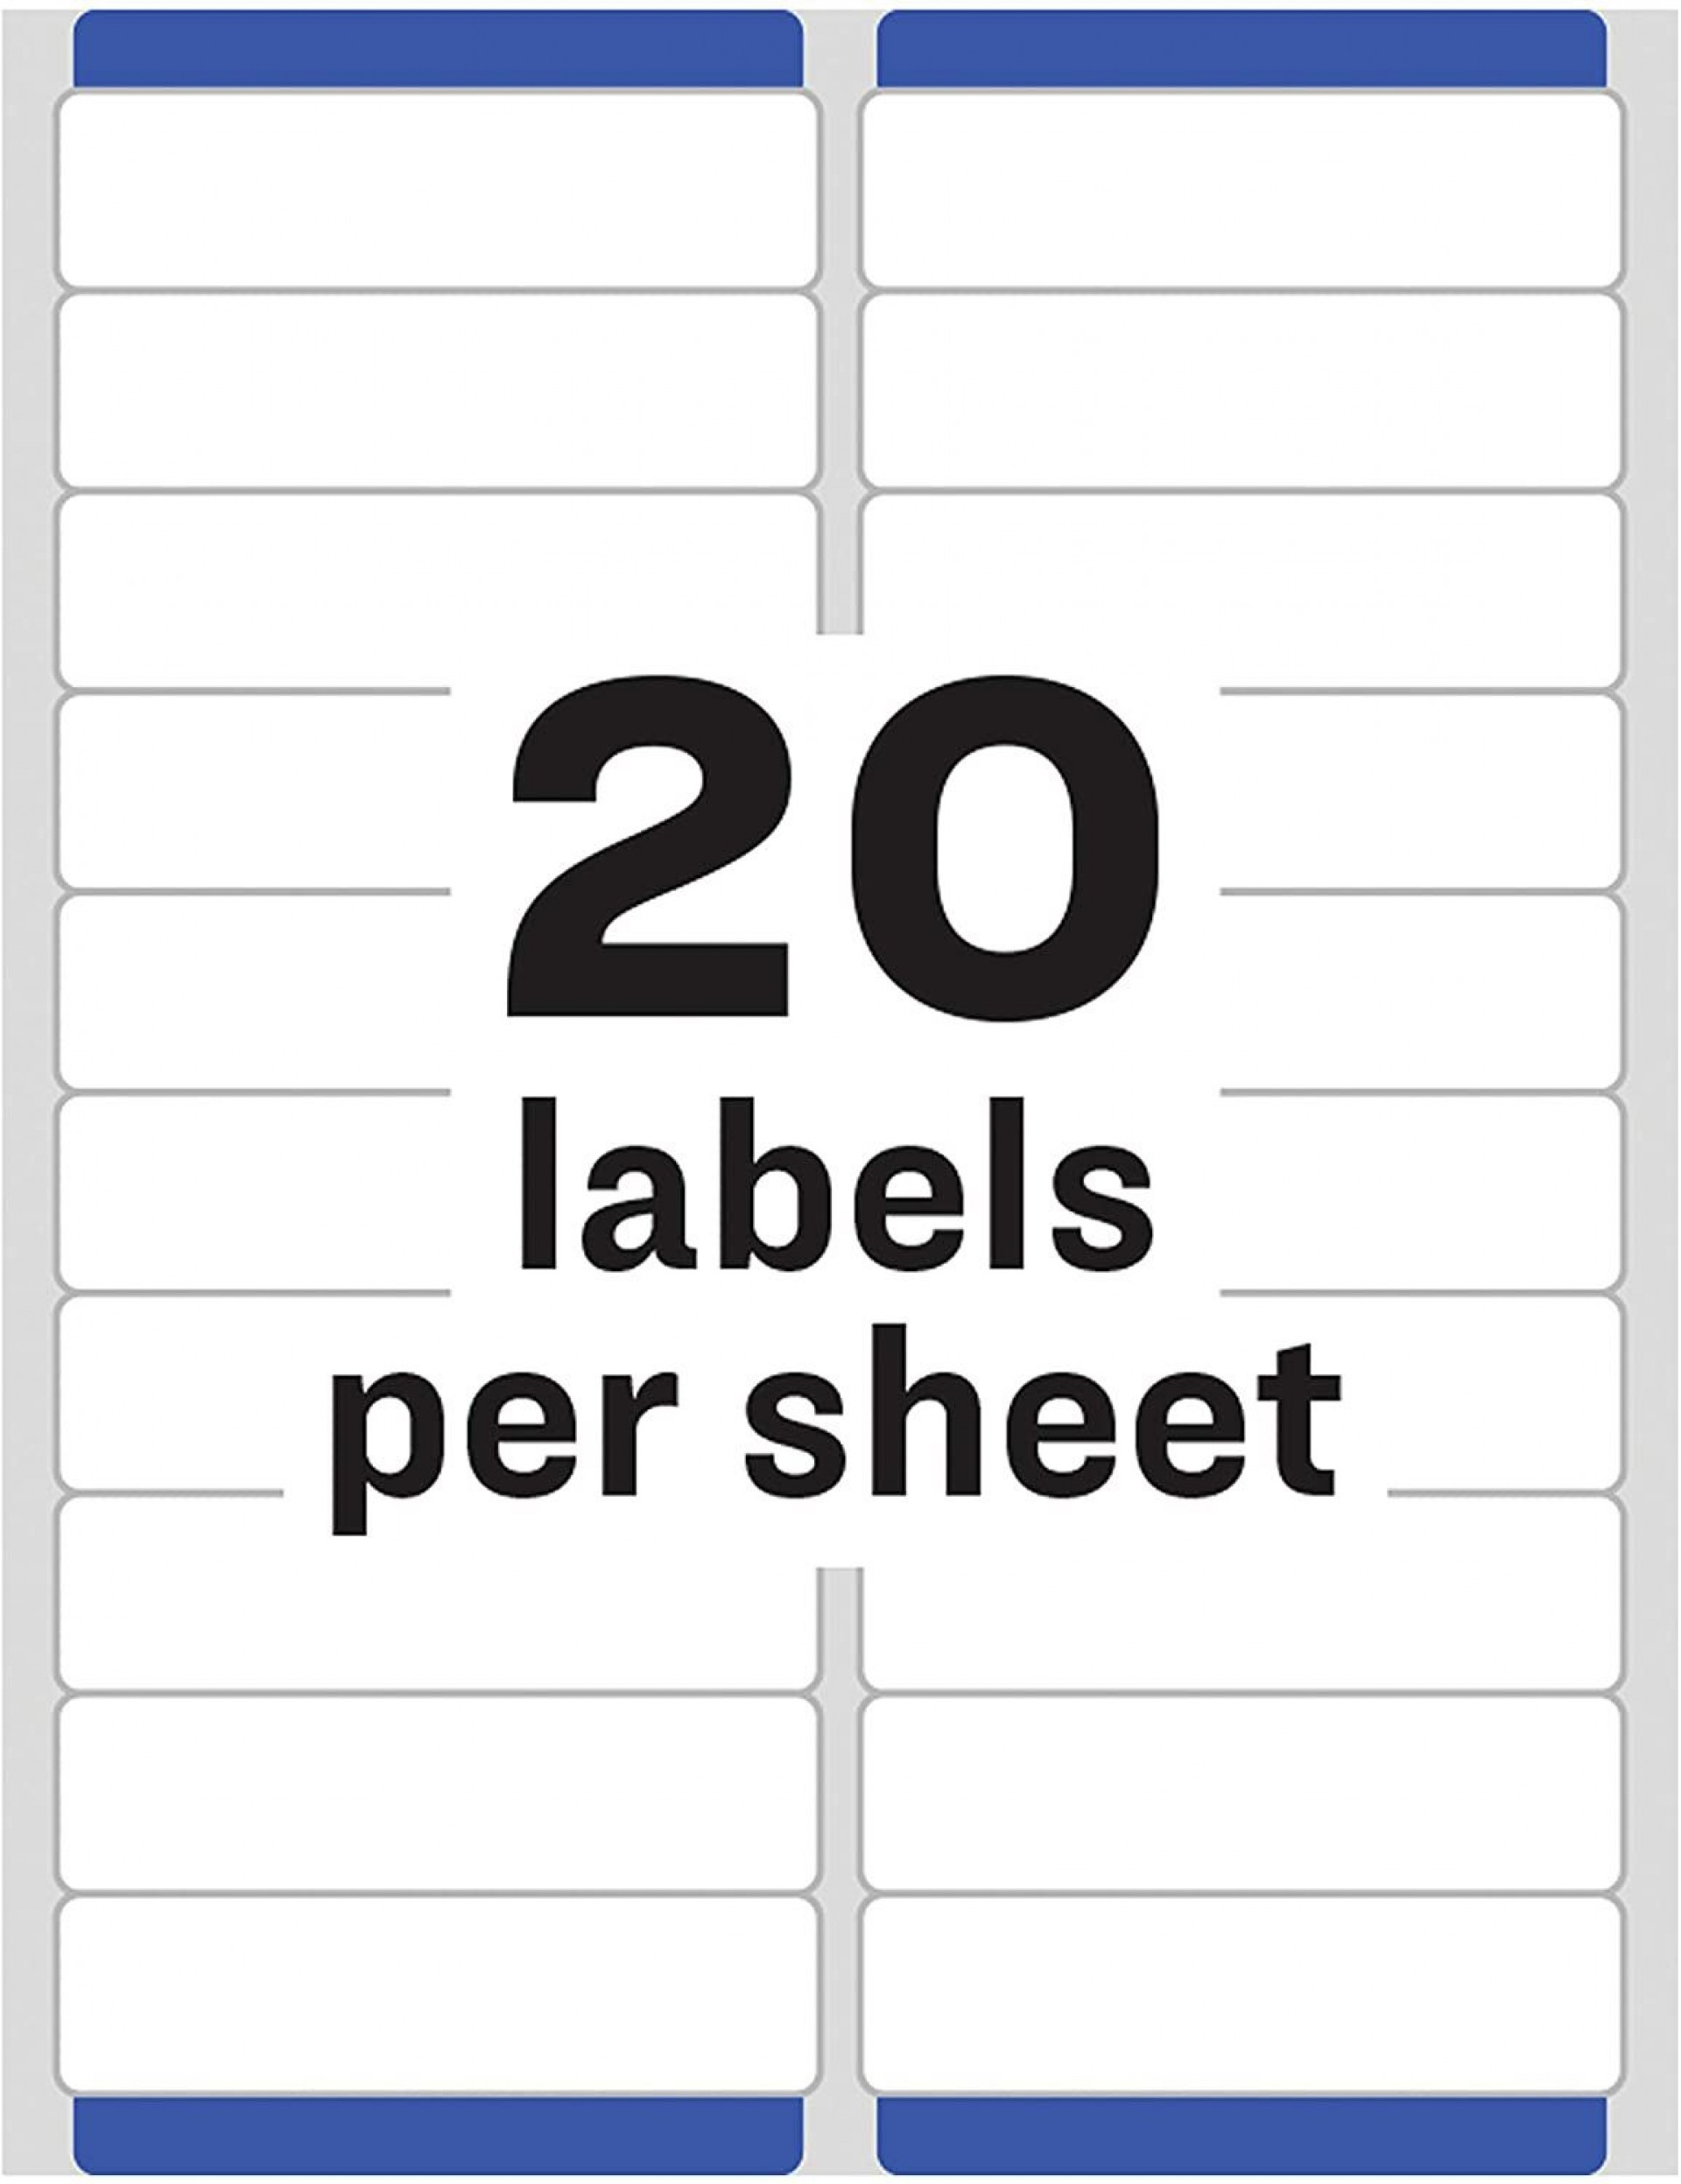 002 Singular Microsoft Word Addres Label Template 20 Per Sheet Example 1920